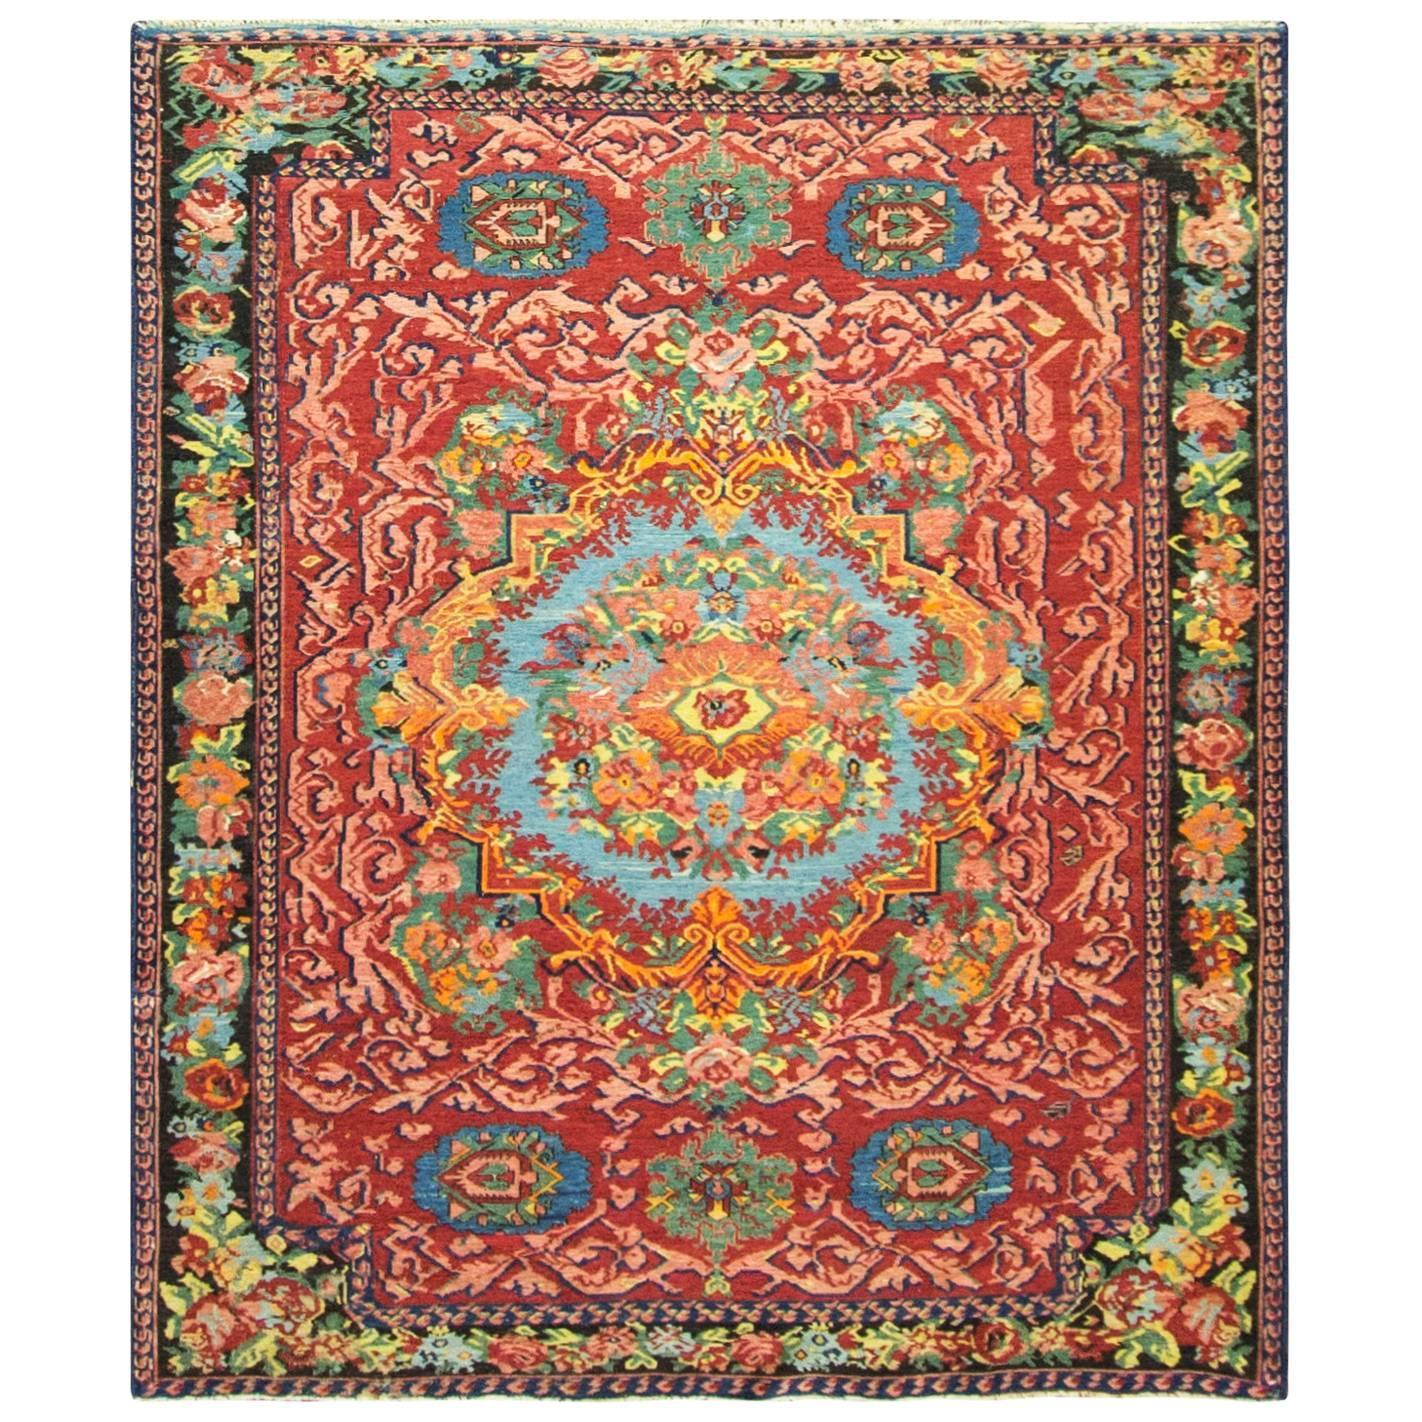 Colorful antique karabagh soumak for sale at 1stdibs for Colorful rugs for sale